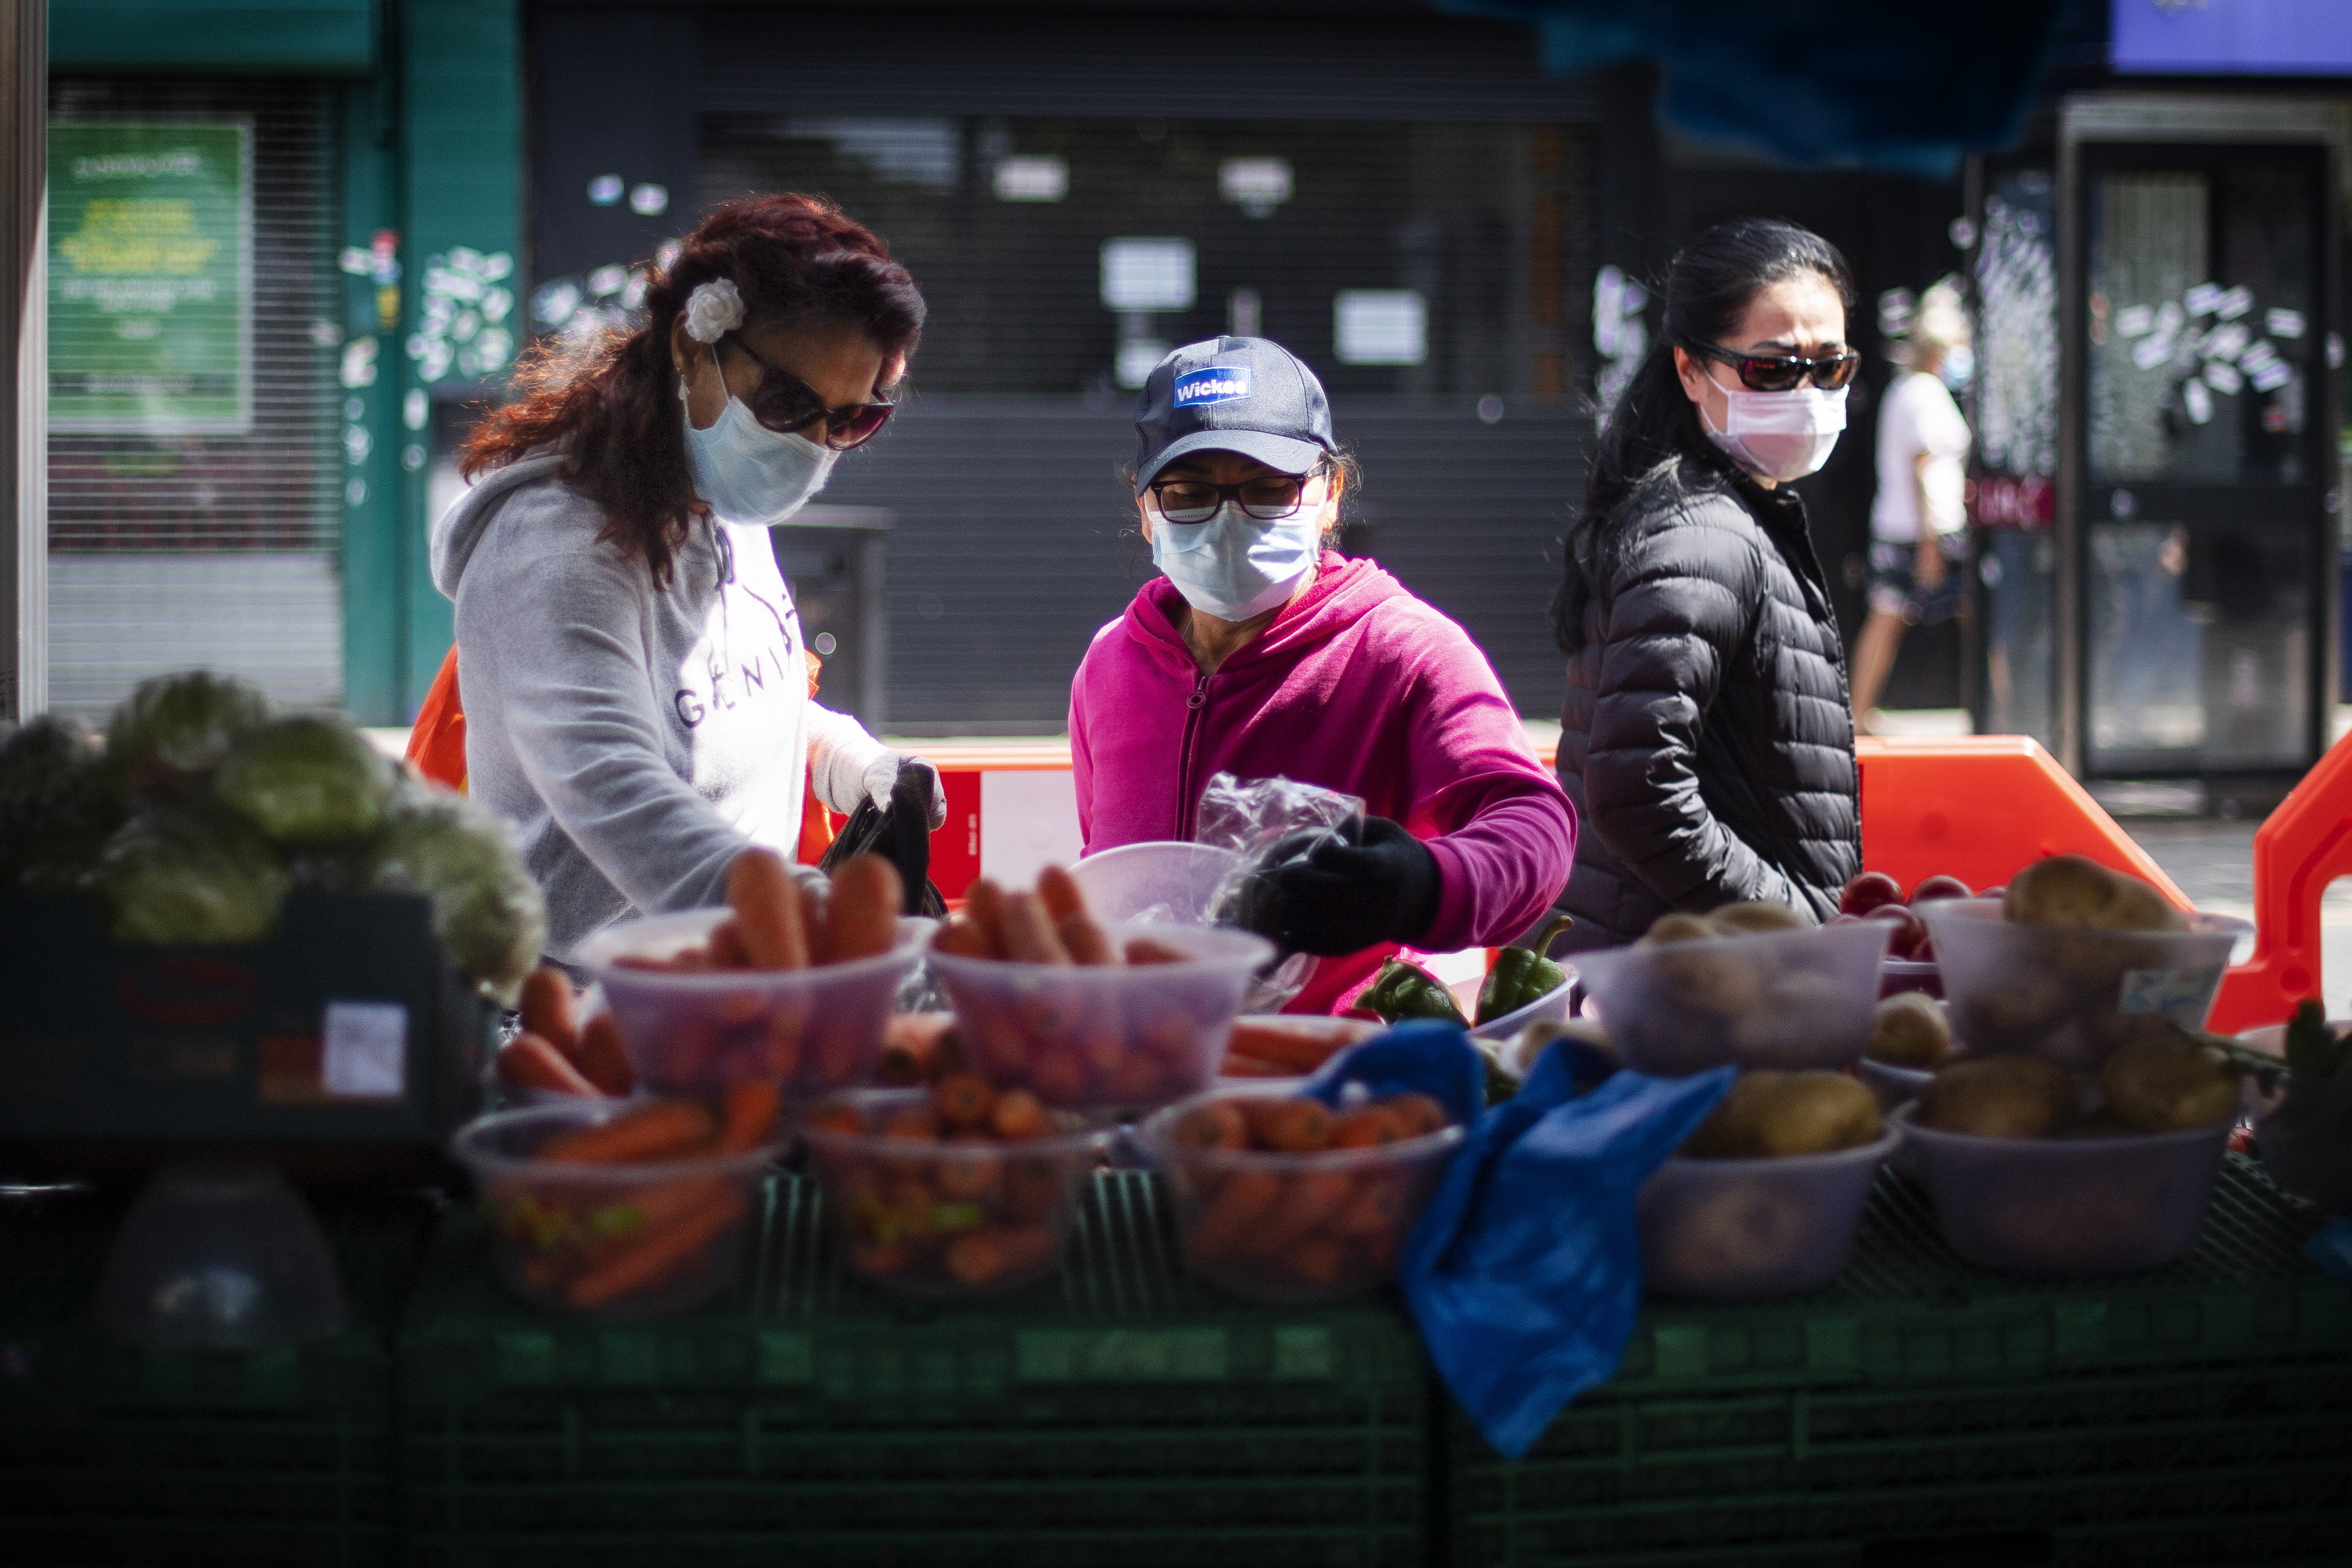 Three women wearing protective face masks buy fruit and vegetables at a high street market stall in East Ham, east London, as the UK continues in lockdown to help curb the spread of the coronavirus.